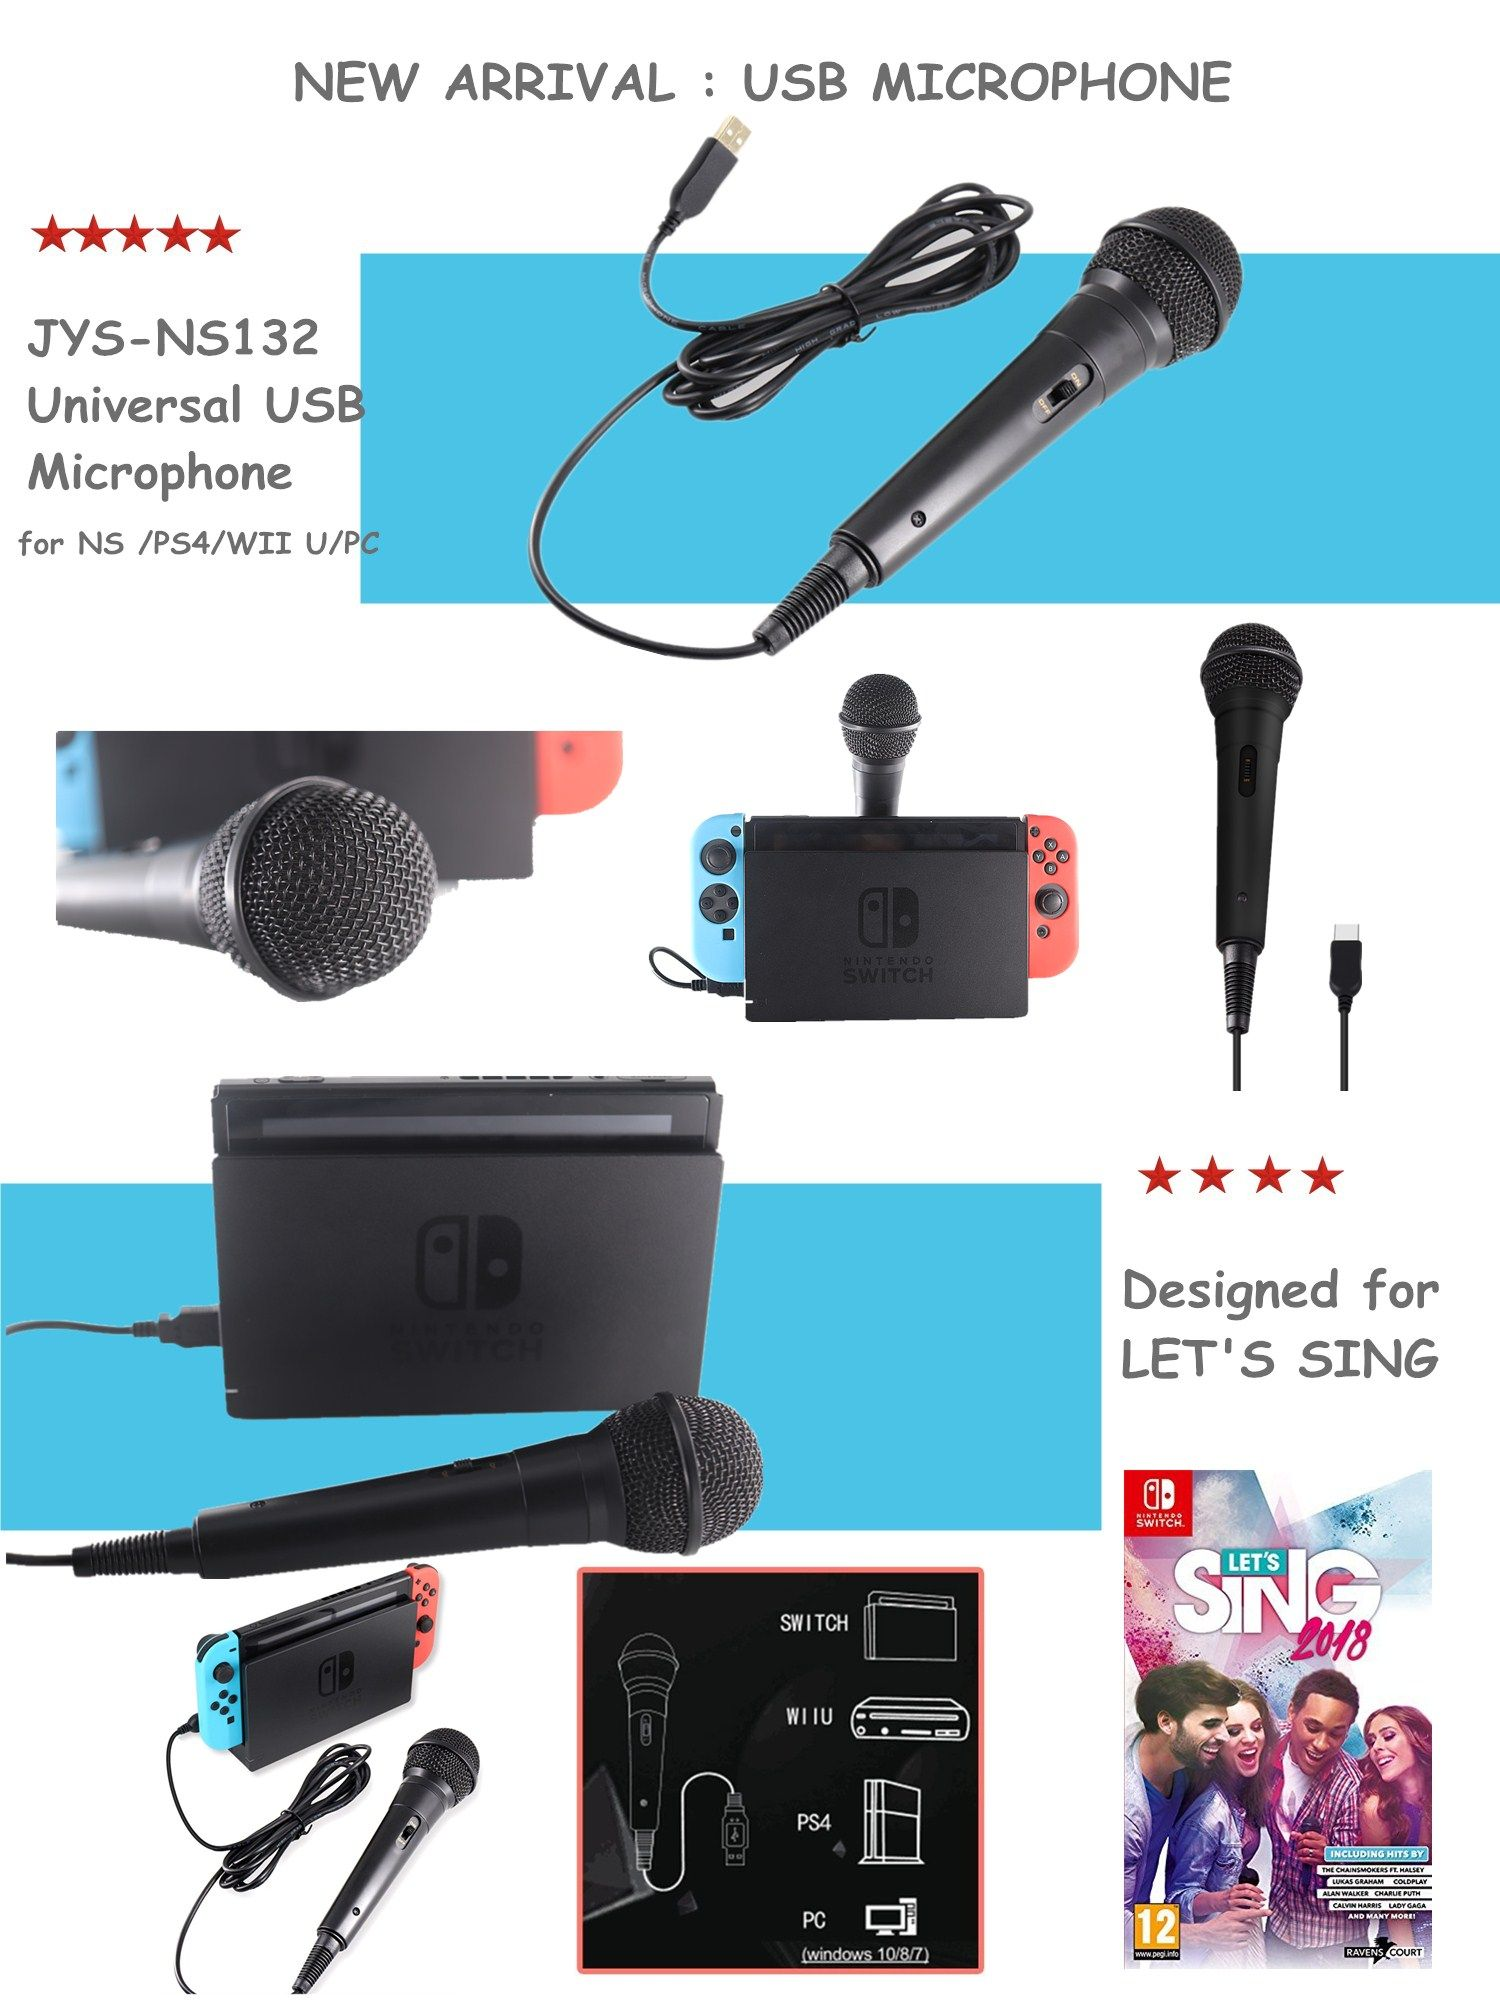 Usb Wired Microphone With 3m Cable For Use Nintendo Switch Splatoon2 Hard Case Ink X Squid Hori Switchwii Upcps4 Uni Directional Dynamic Featues A Lockable On Off